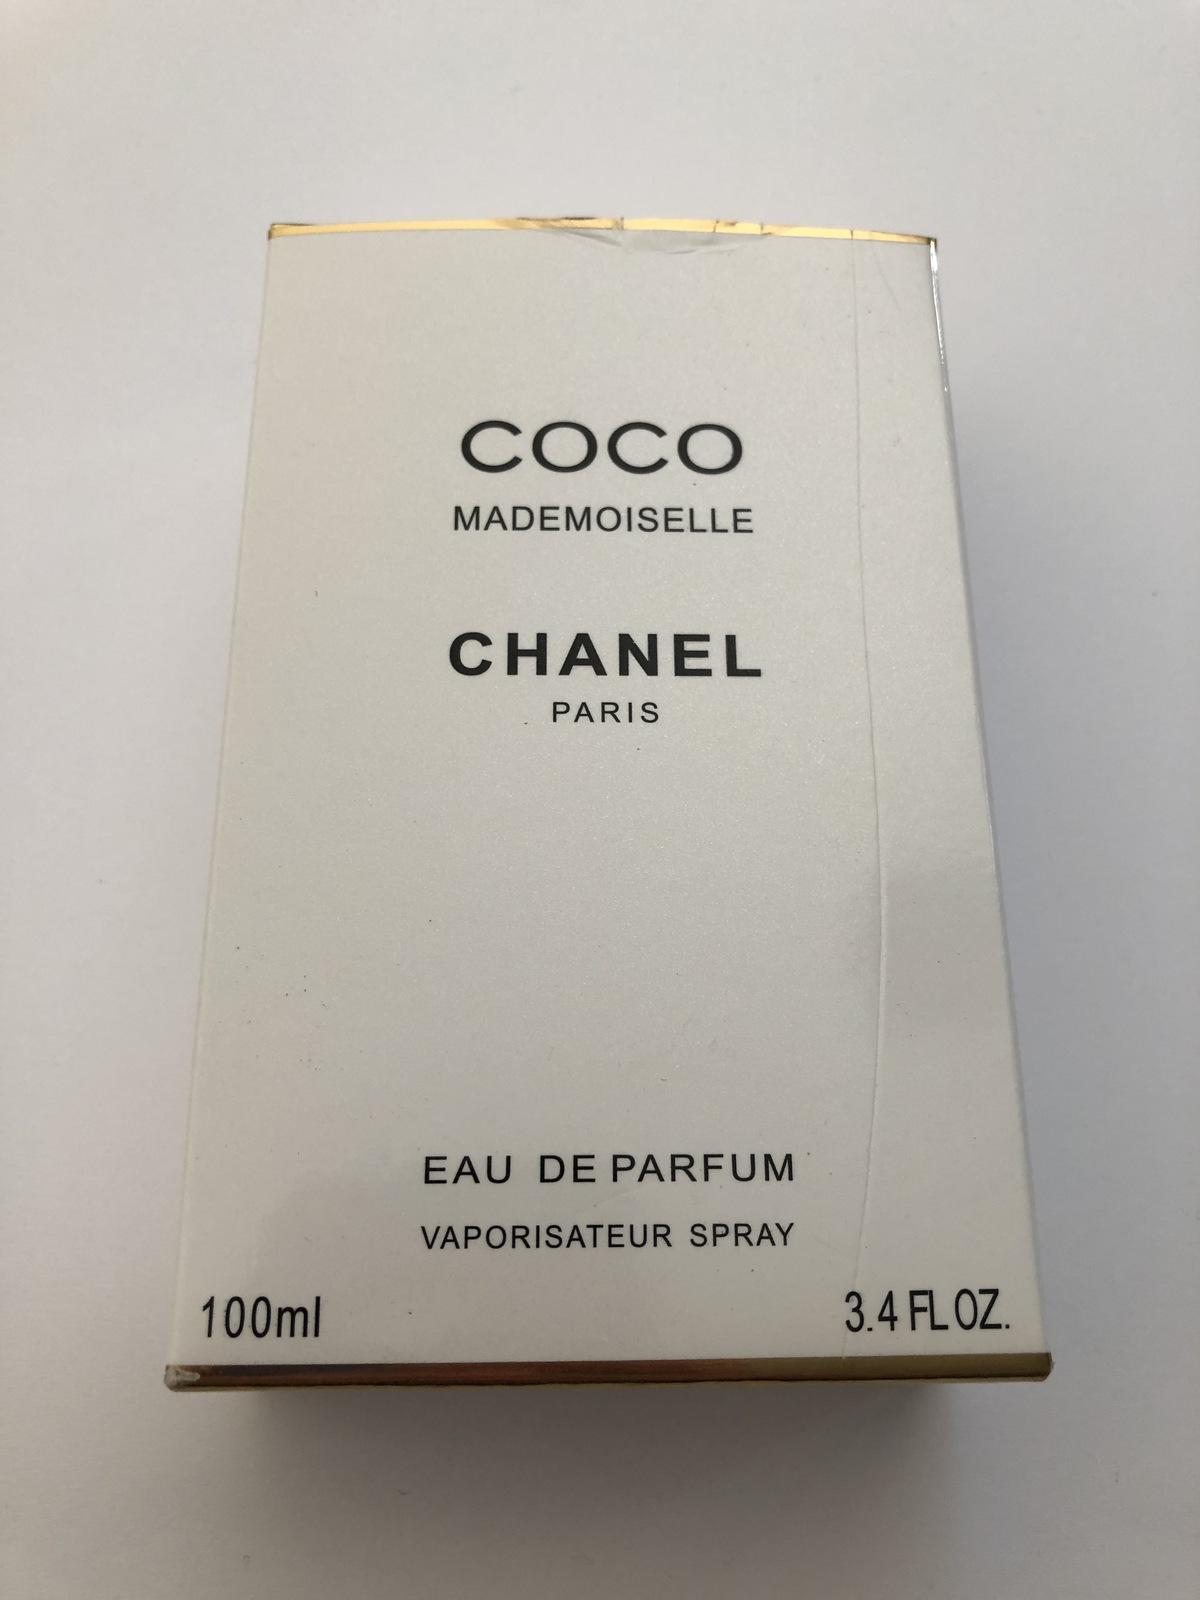 Primary image for Coco Mademoiselle Chanel Eau de Parfum Spray For Women 100ml 3.4 oz